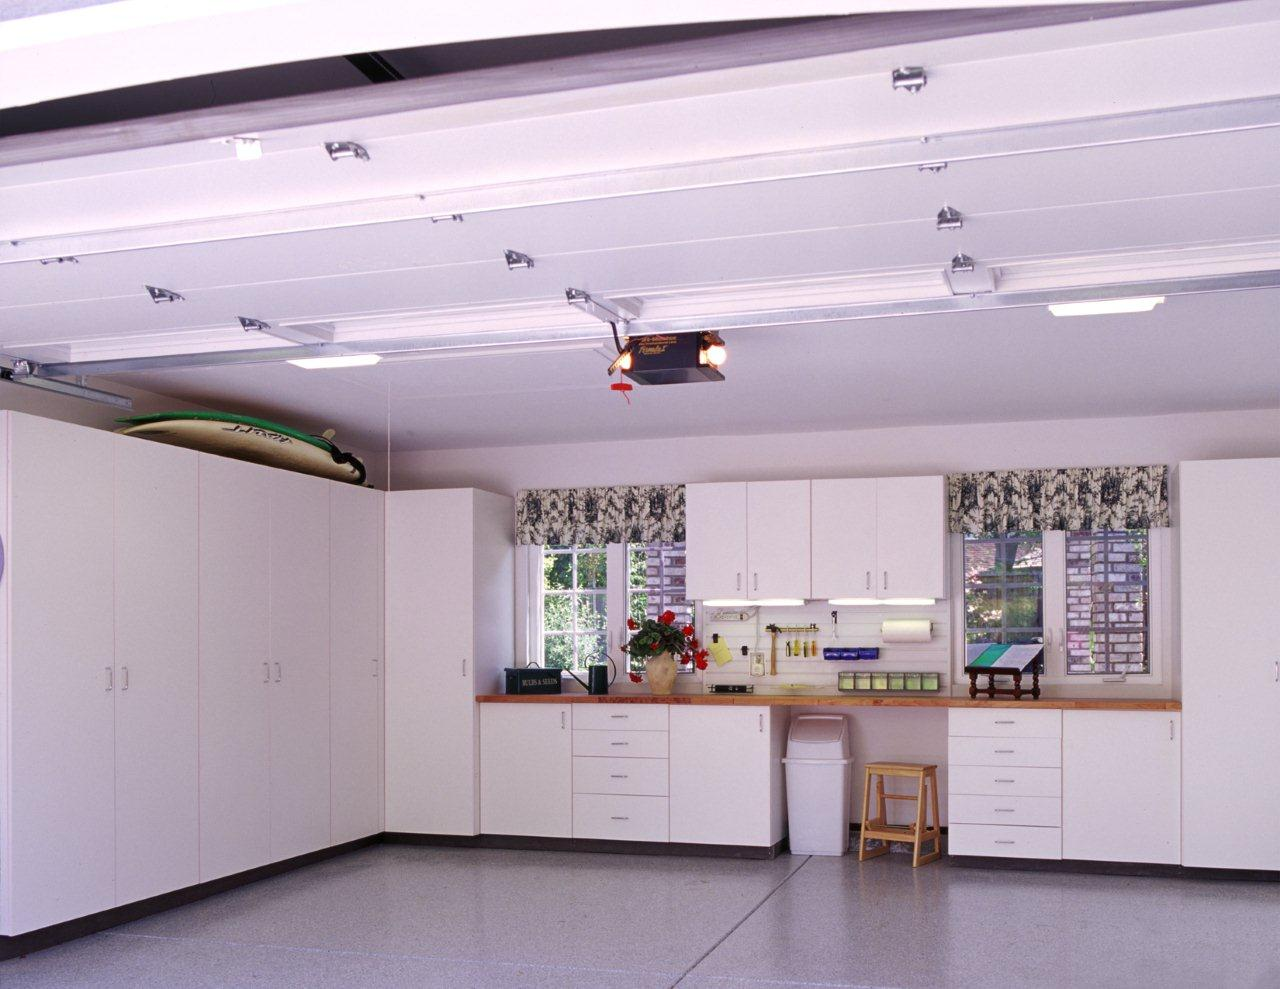 A Custom Garage Storage System Can Transform Your Home Into A Gardeneru0027s  Paradise. Cabinets,